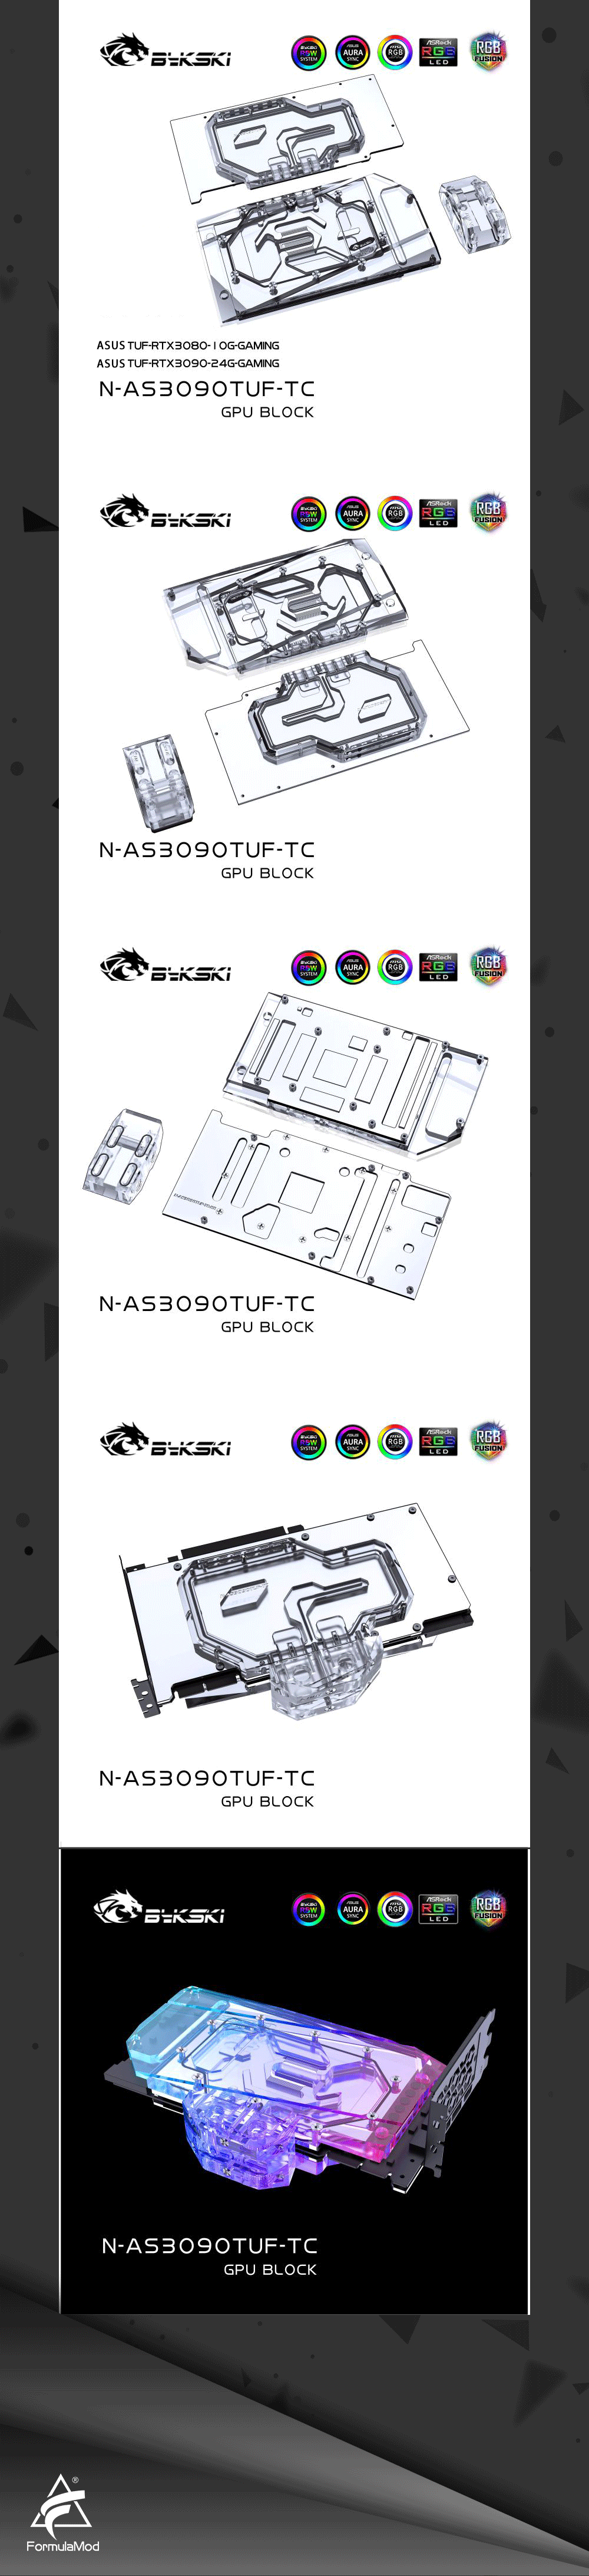 Bykski N-AS3090TUF-TC  GPU Water Block for ASUS TUF RTX 3090 /3080 GAMING Graphic Card with Special Copper Backplate